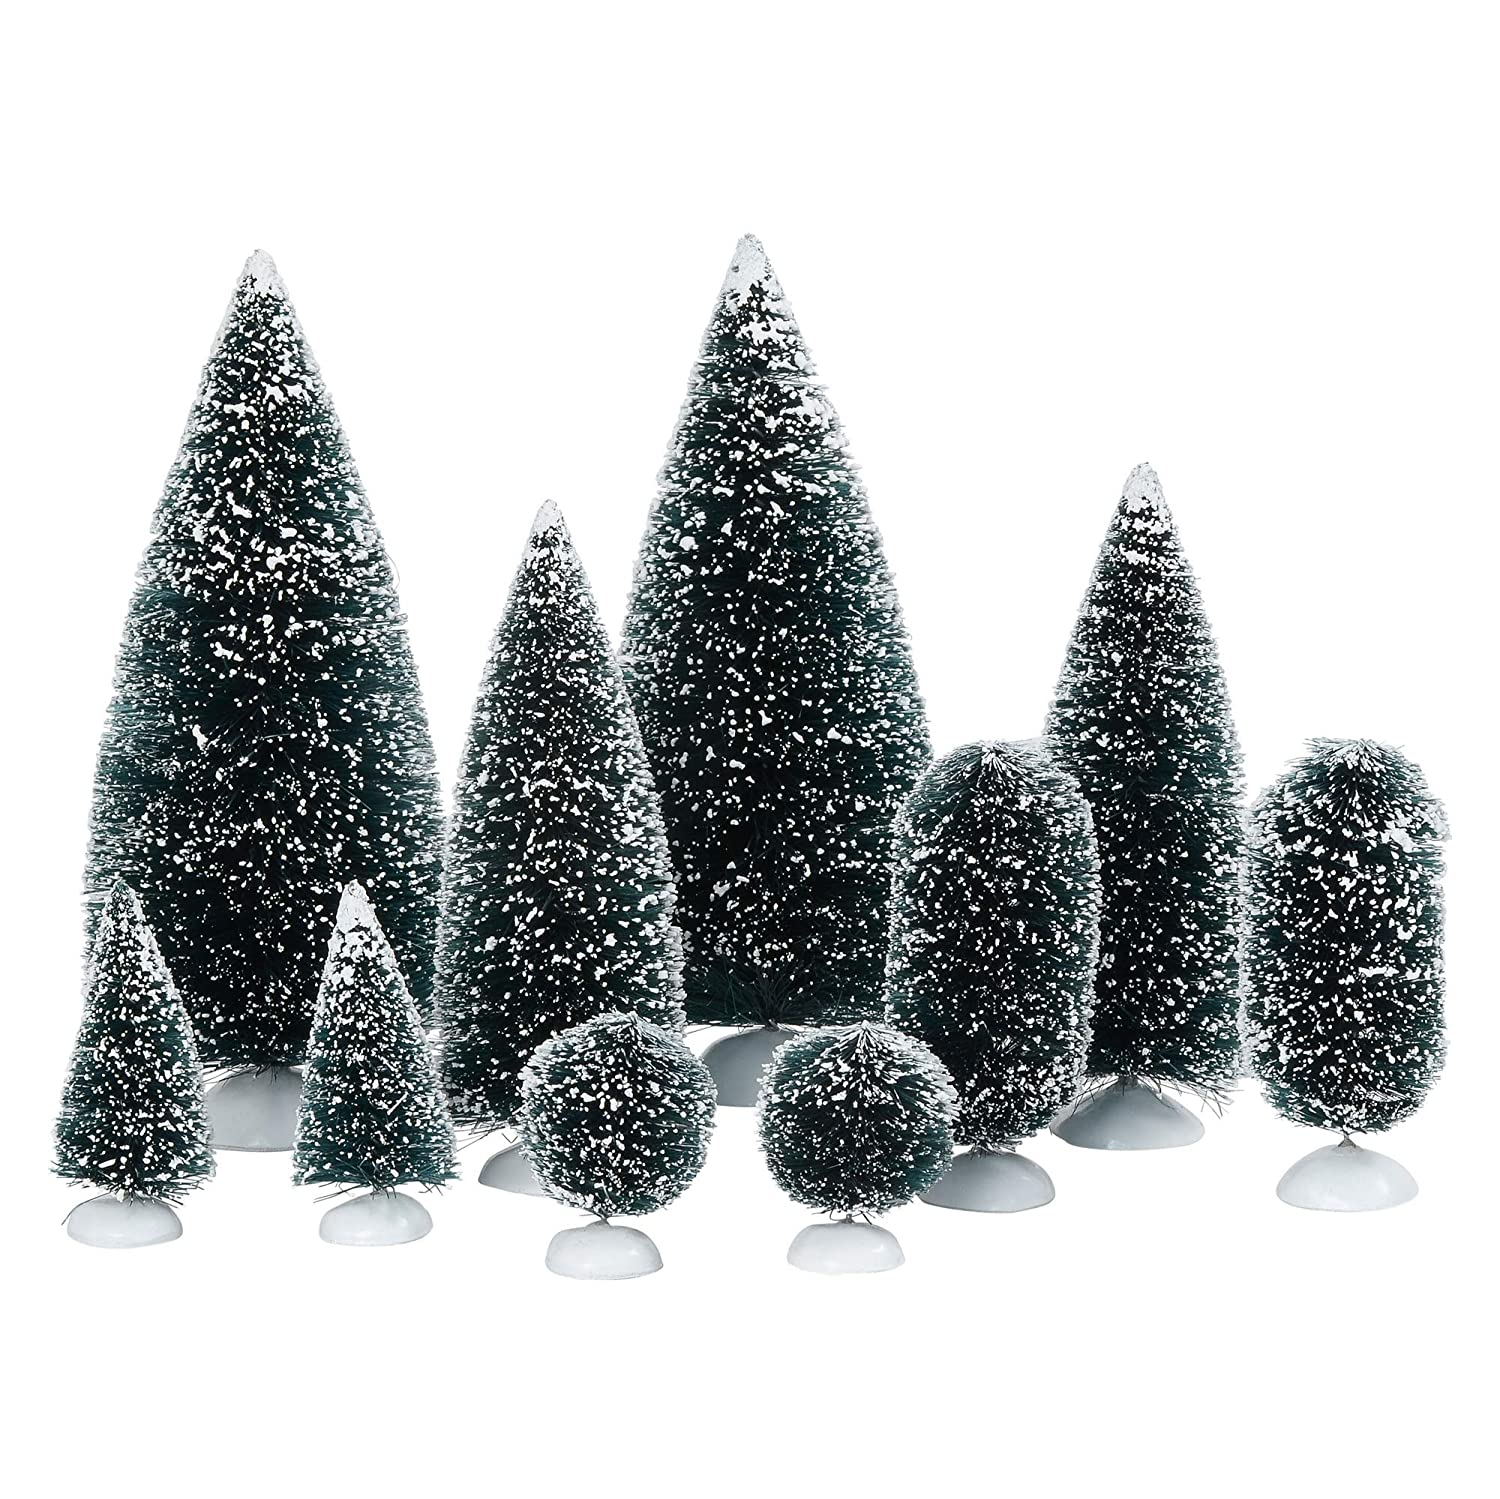 Christmas bottle brush christmas tree set. #bottlebrush #christmastree #holidaydecor #christmasdecorating